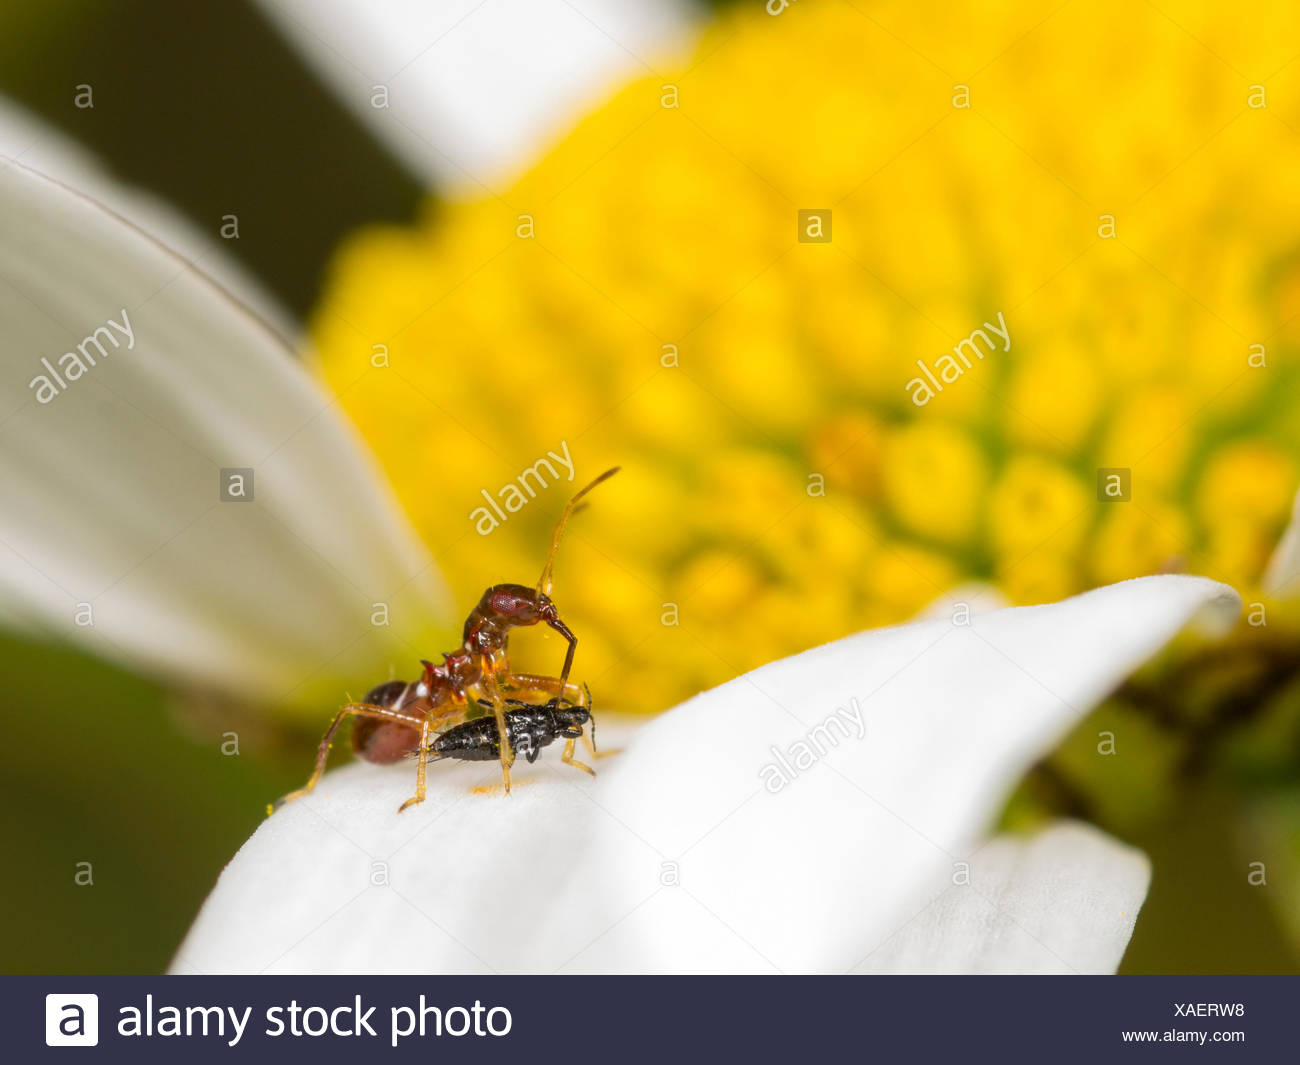 samsel bug himacerus mirmicoides young larva eats a captured thrips suocerathrips lingus